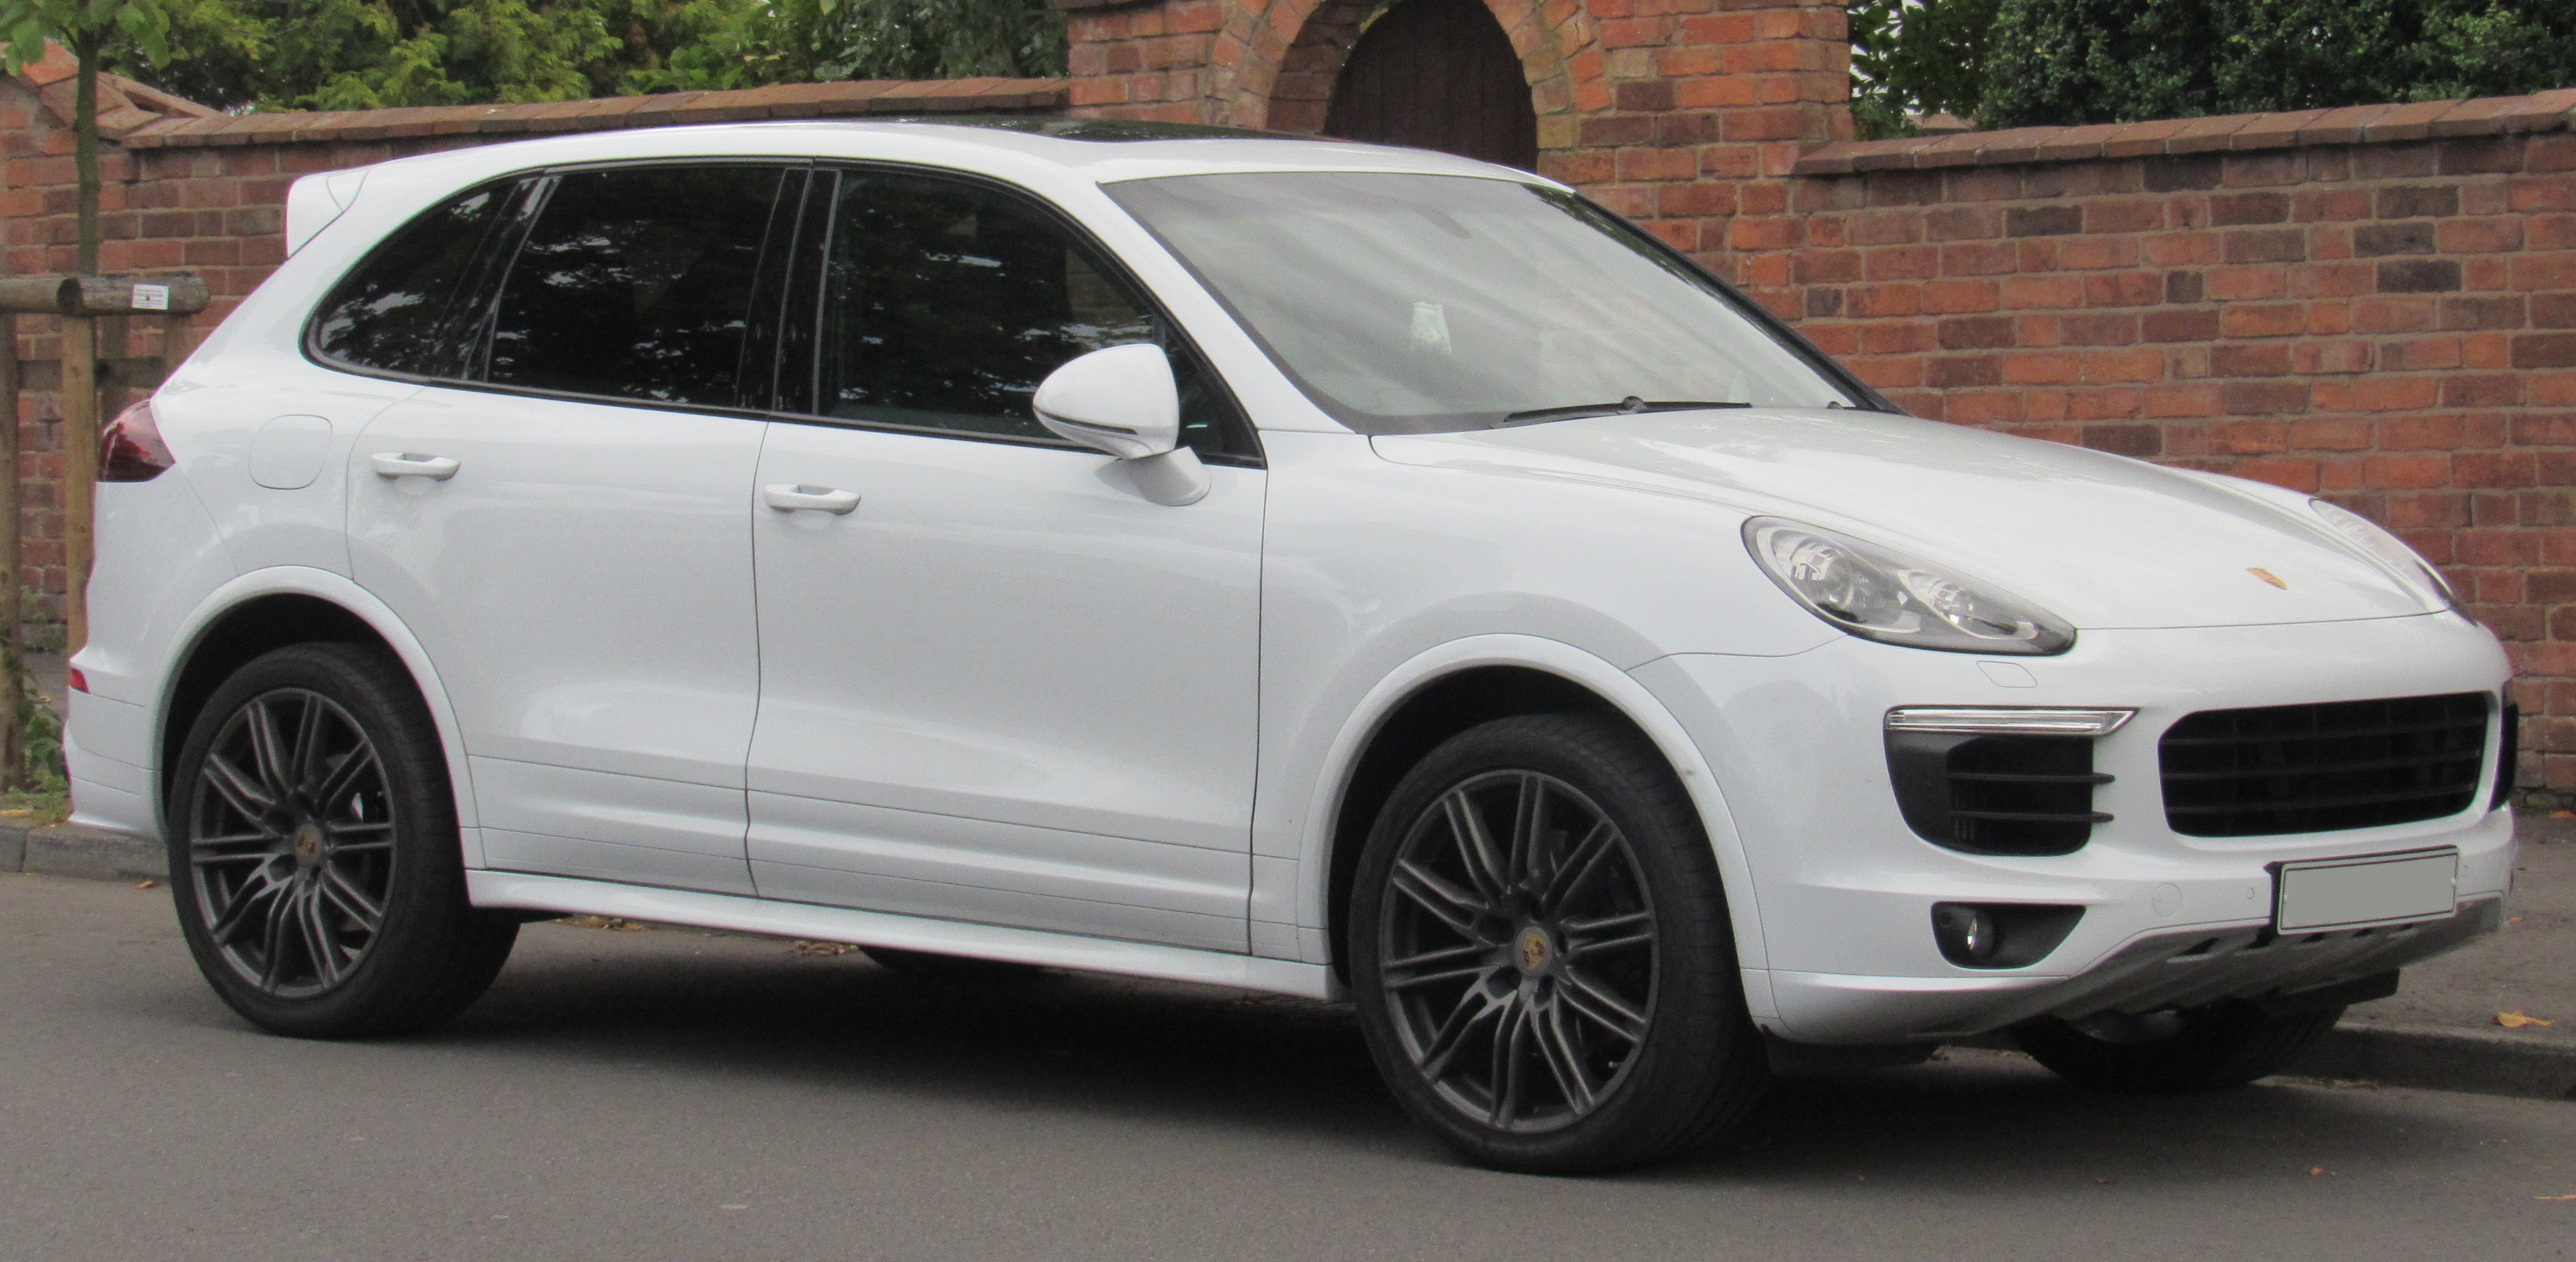 Porsche Cayenne V6 Sel Uk Facelift